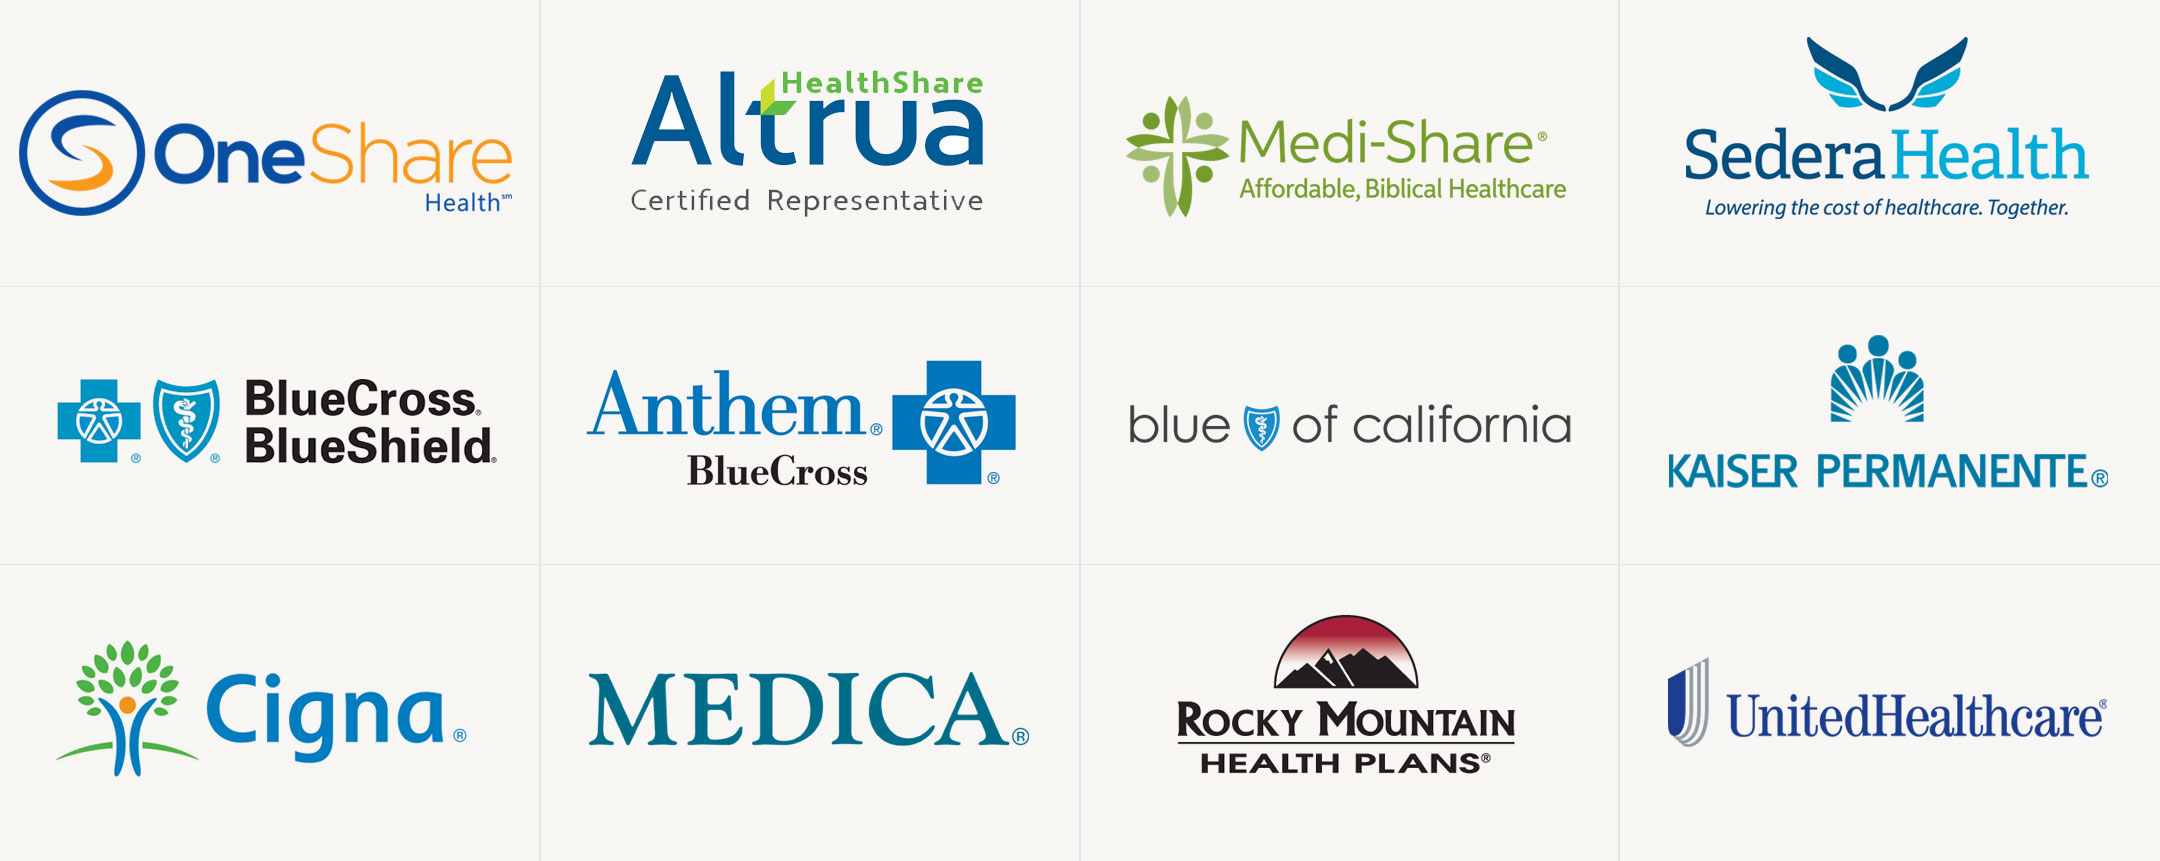 Hsa For America Affordable Medical Sharing Health Insurance Plans